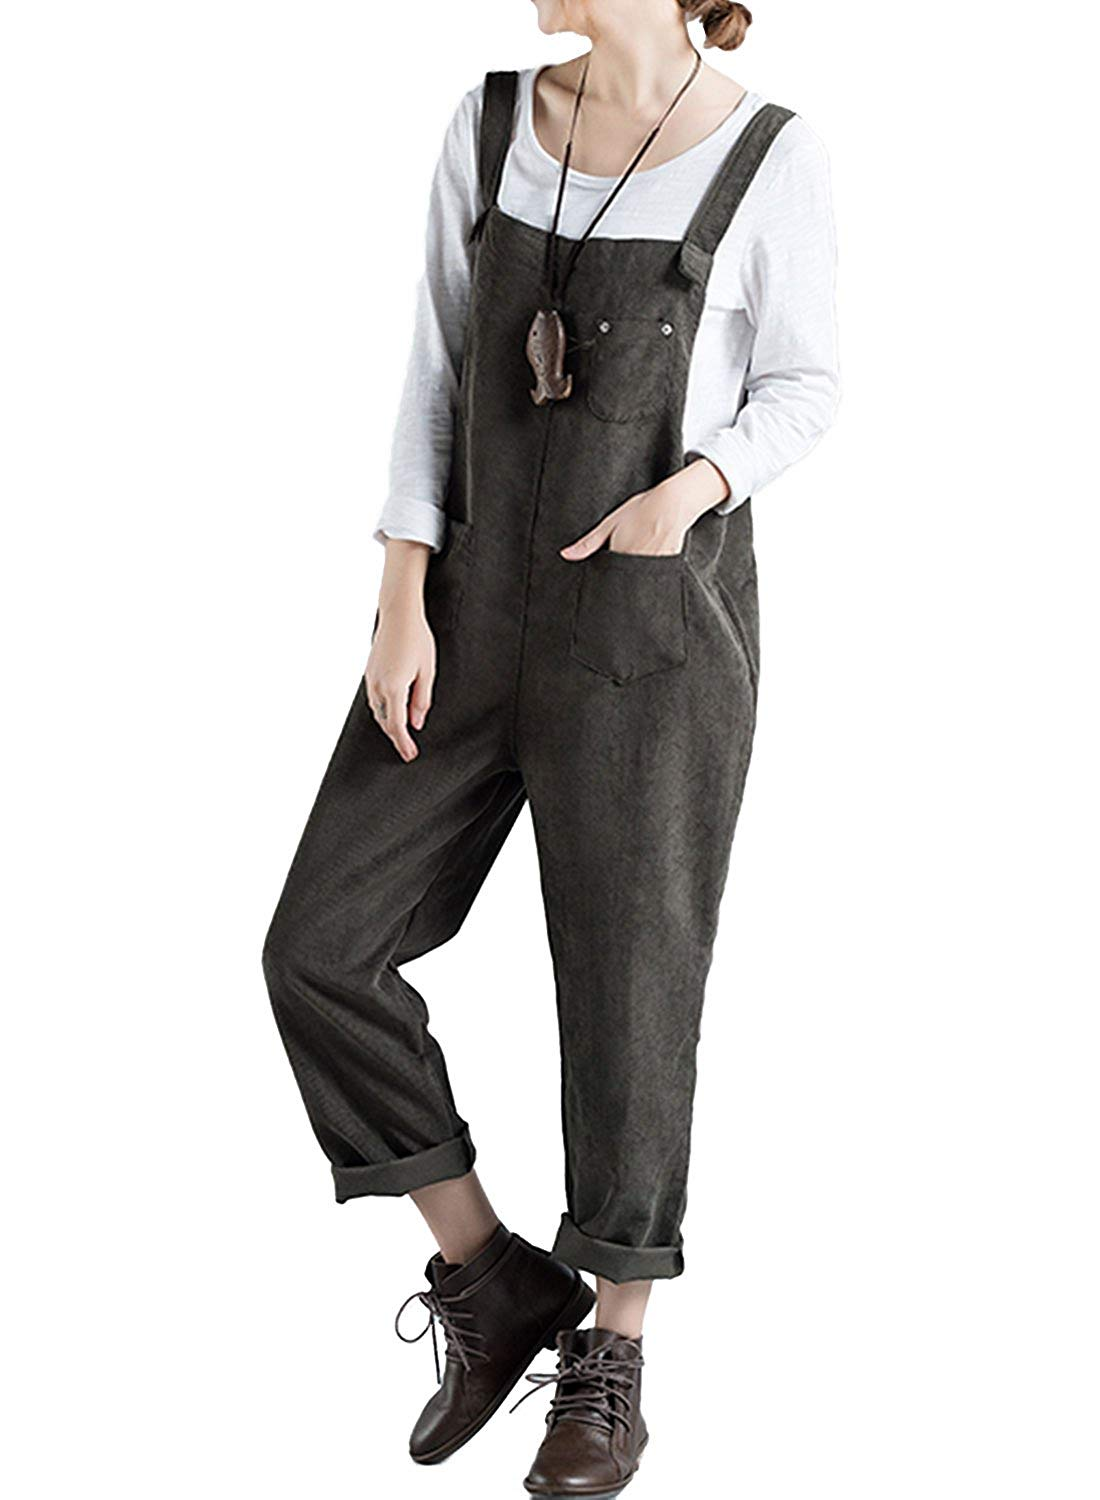 b8fe1beb00f Get Quotations · LEO BON Womens Soild Color Simple Pattern Overalls  Jumpsuits Work Utility Coveralls